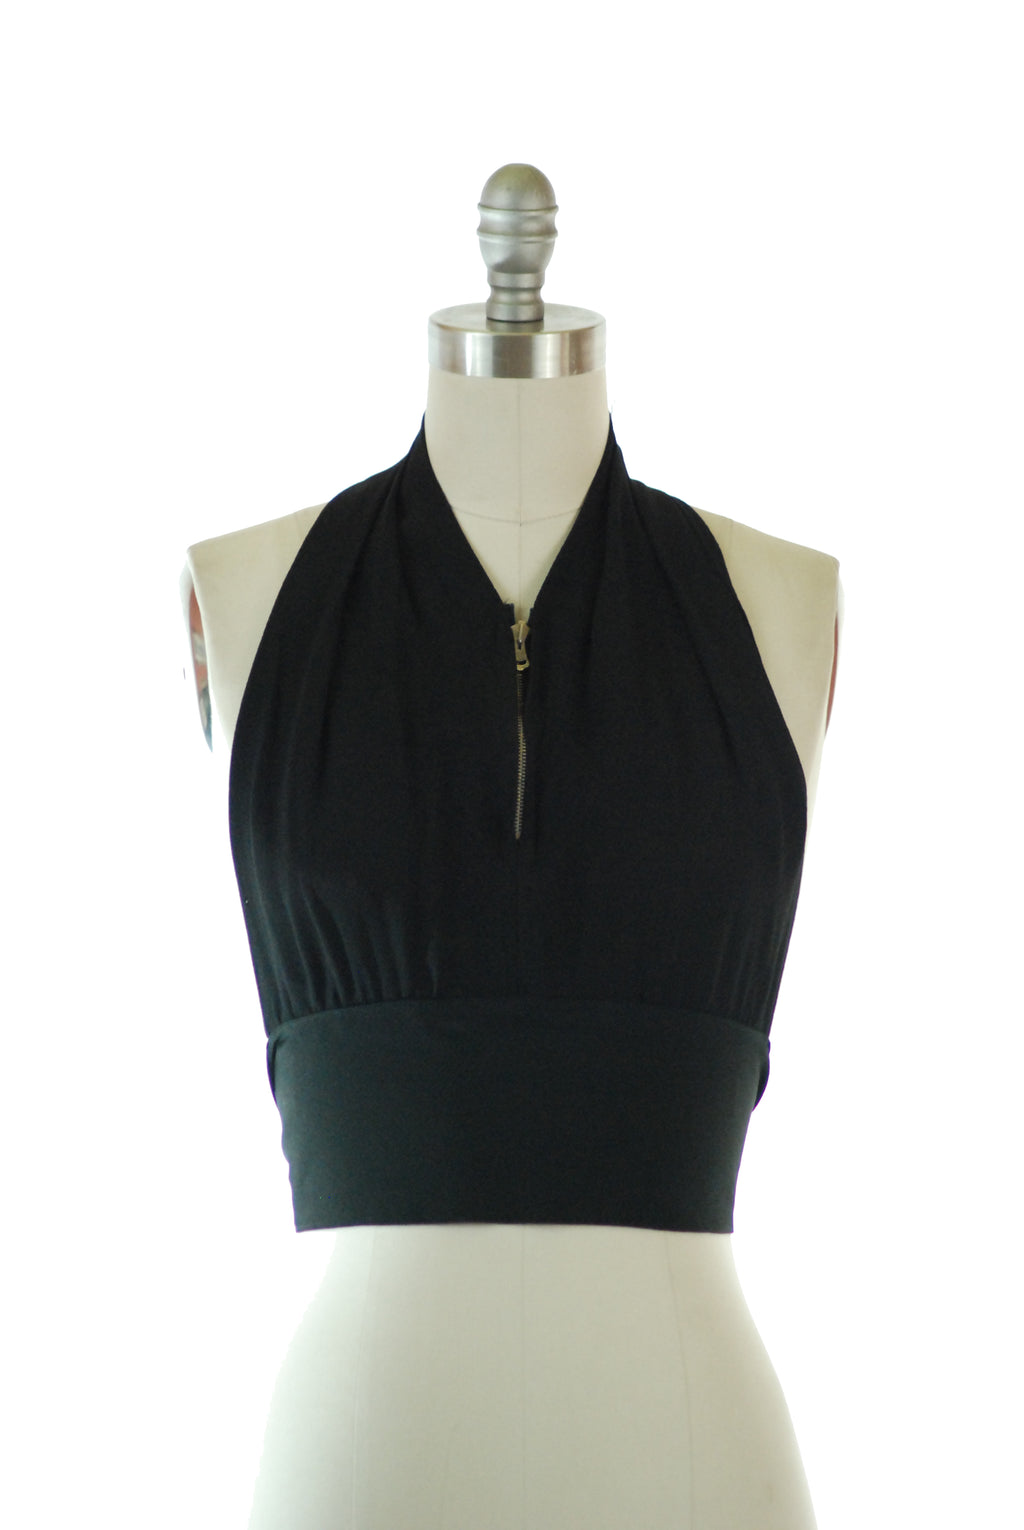 Sexy 1930s Tie-Style Zip Front Halter Top in Black Rayon Crepe